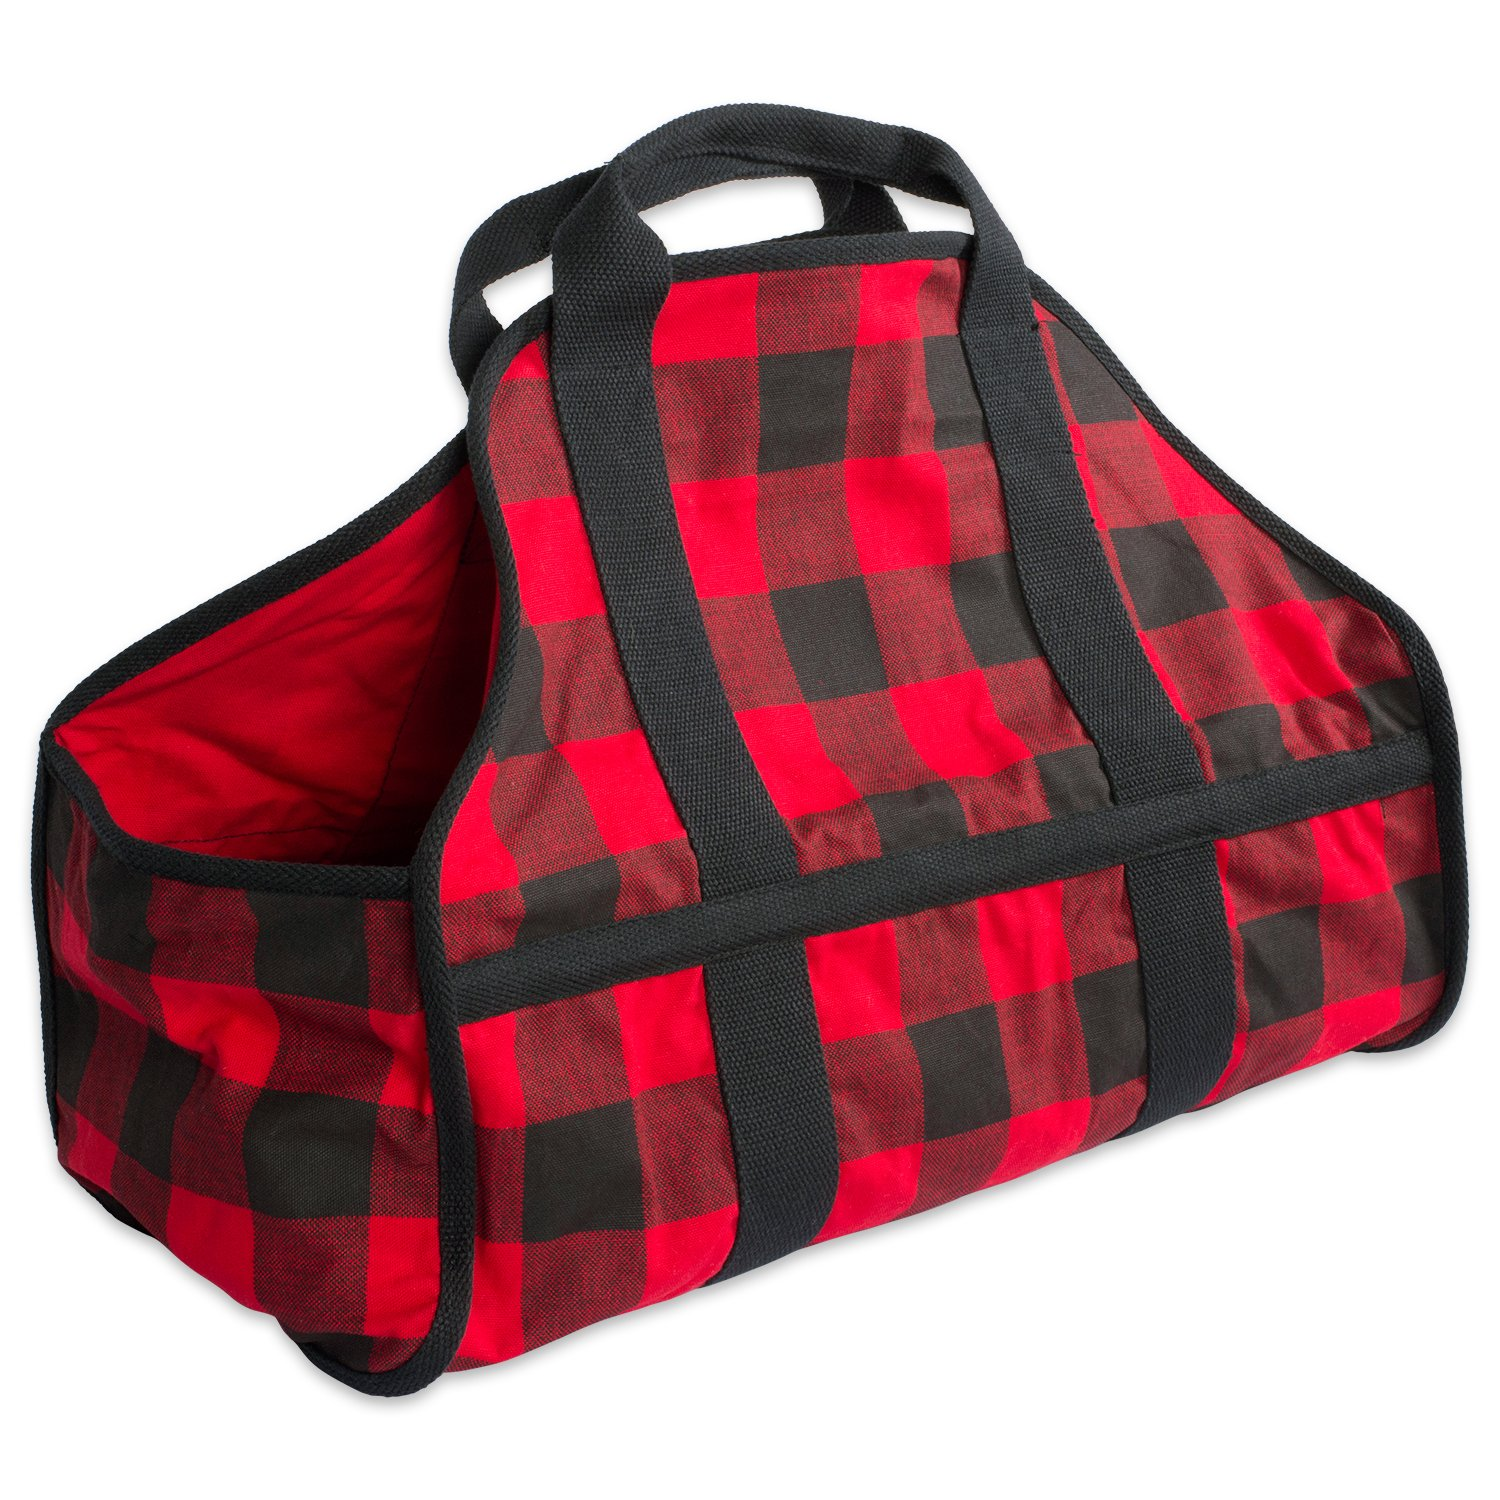 DII CAMZ37646 Cotton Heavy Duty Canvas Firewood Log Carrier Tote Bag, 22 x 16.5 x 10'' by DII